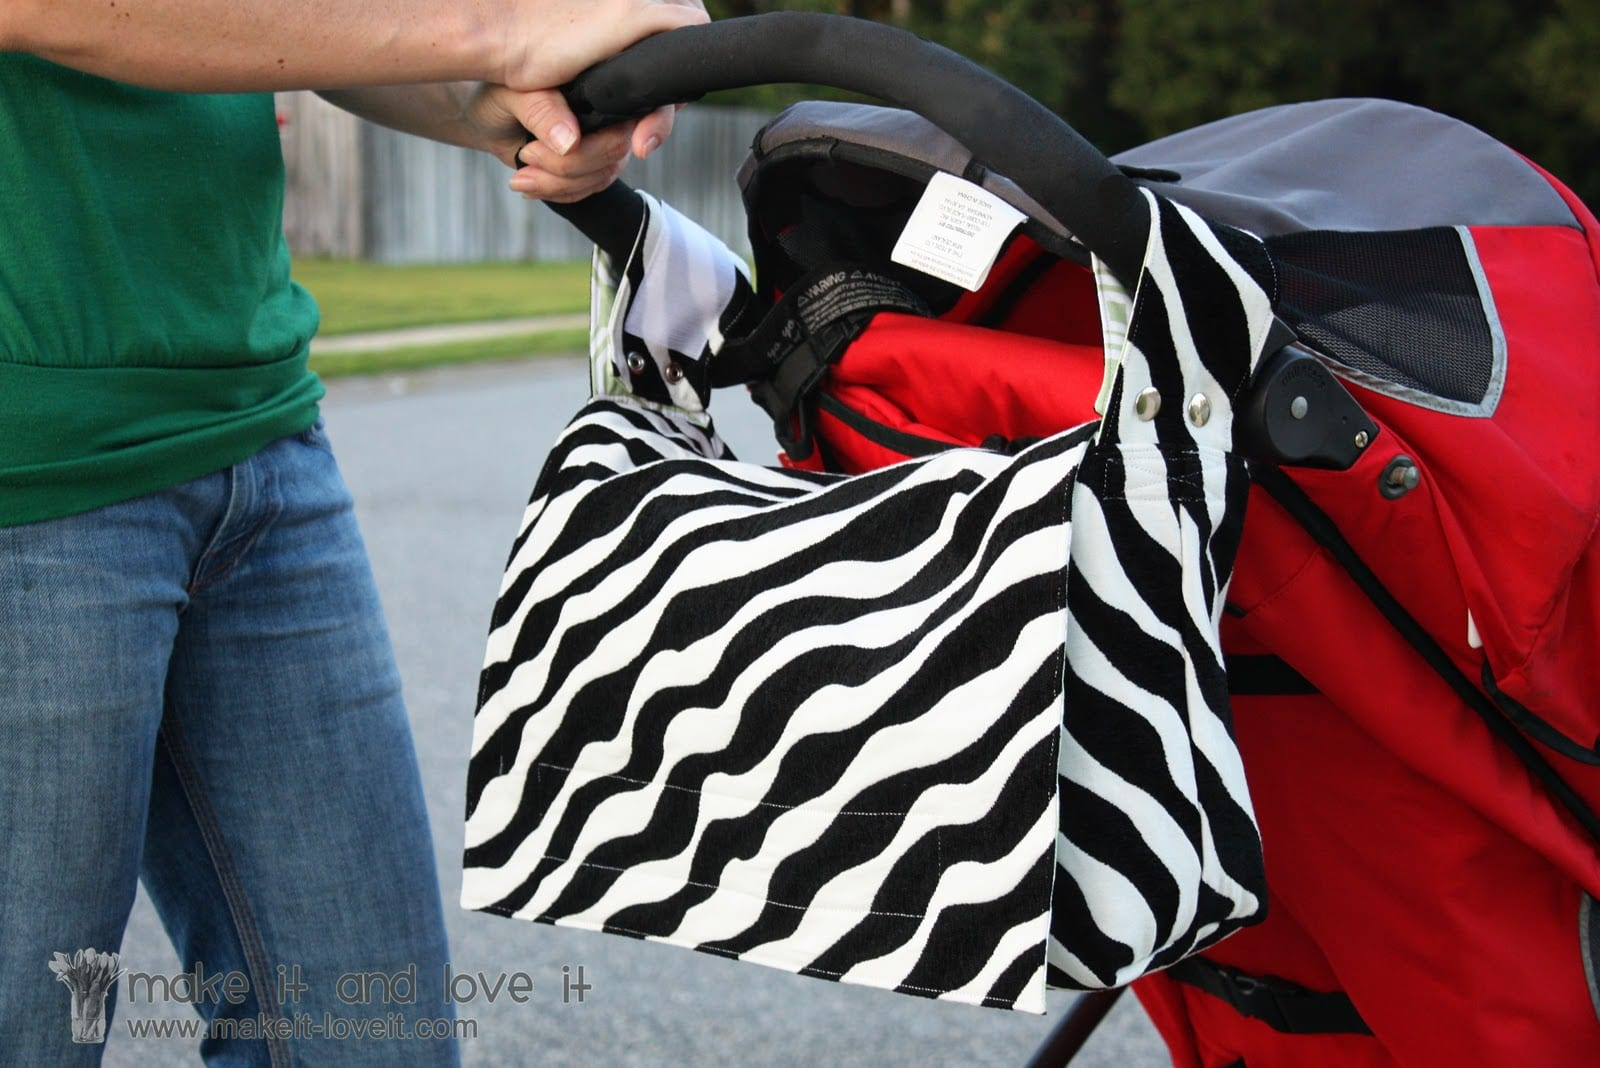 2-in-1 Bag: Stroller Bag into a Messenger Bag